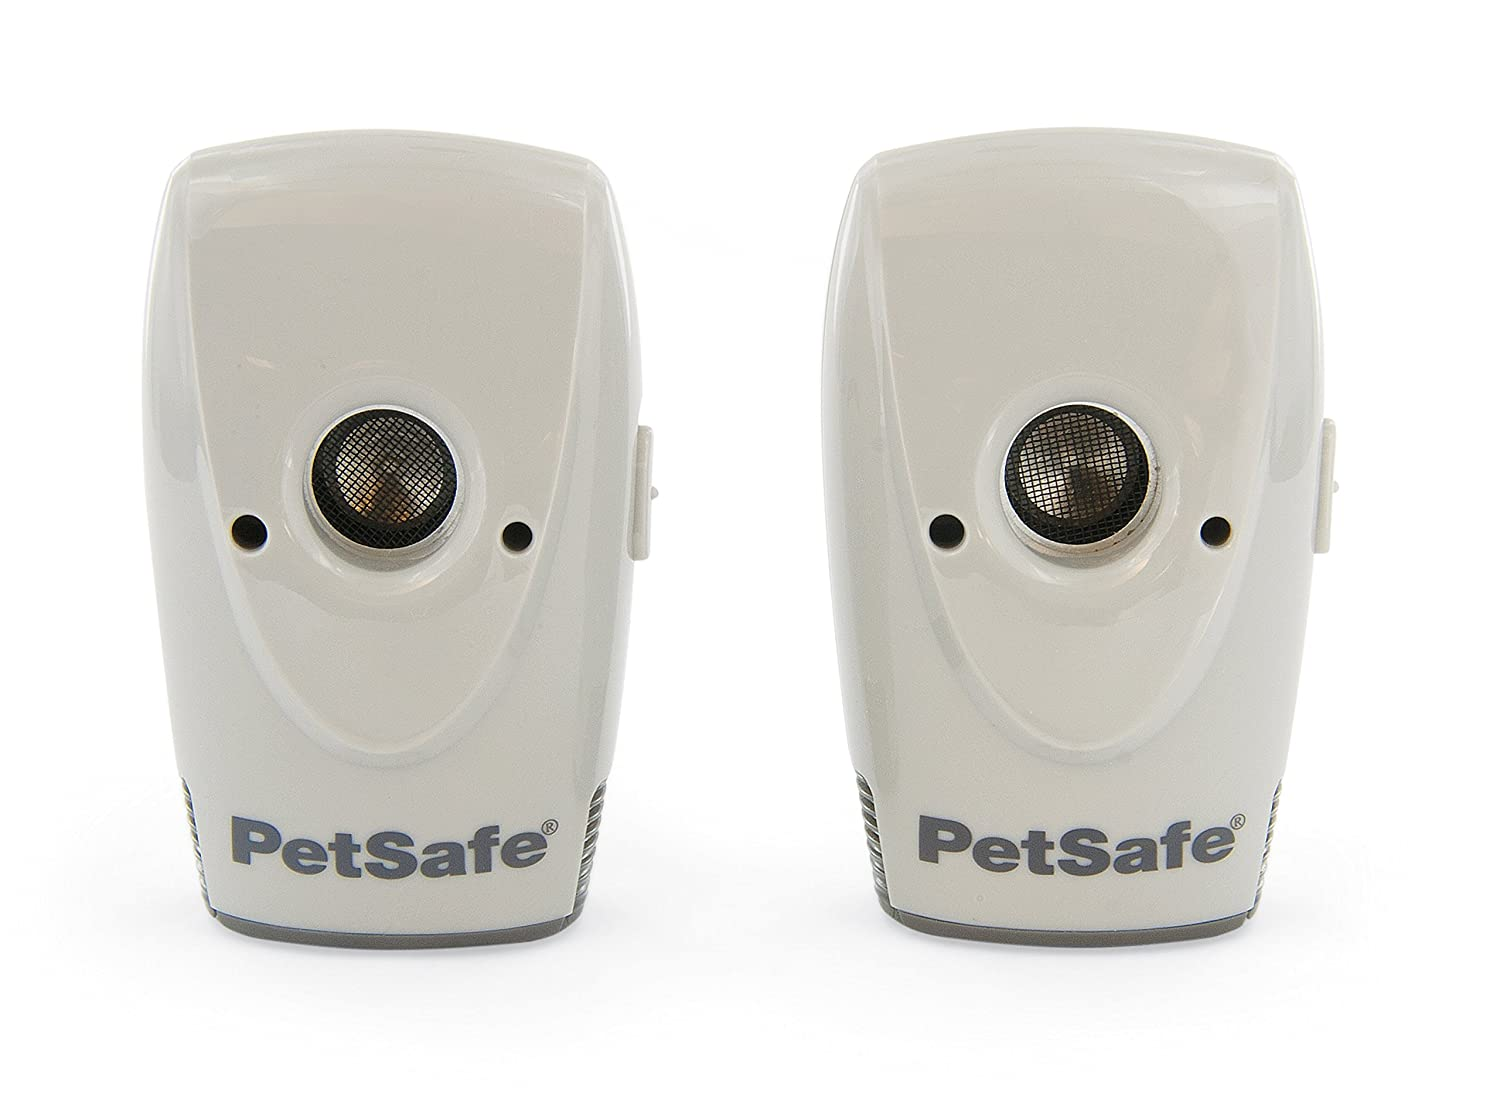 Petsafe Estación antiladridos por ultrasonidos: Amazon.es: Productos para mascotas